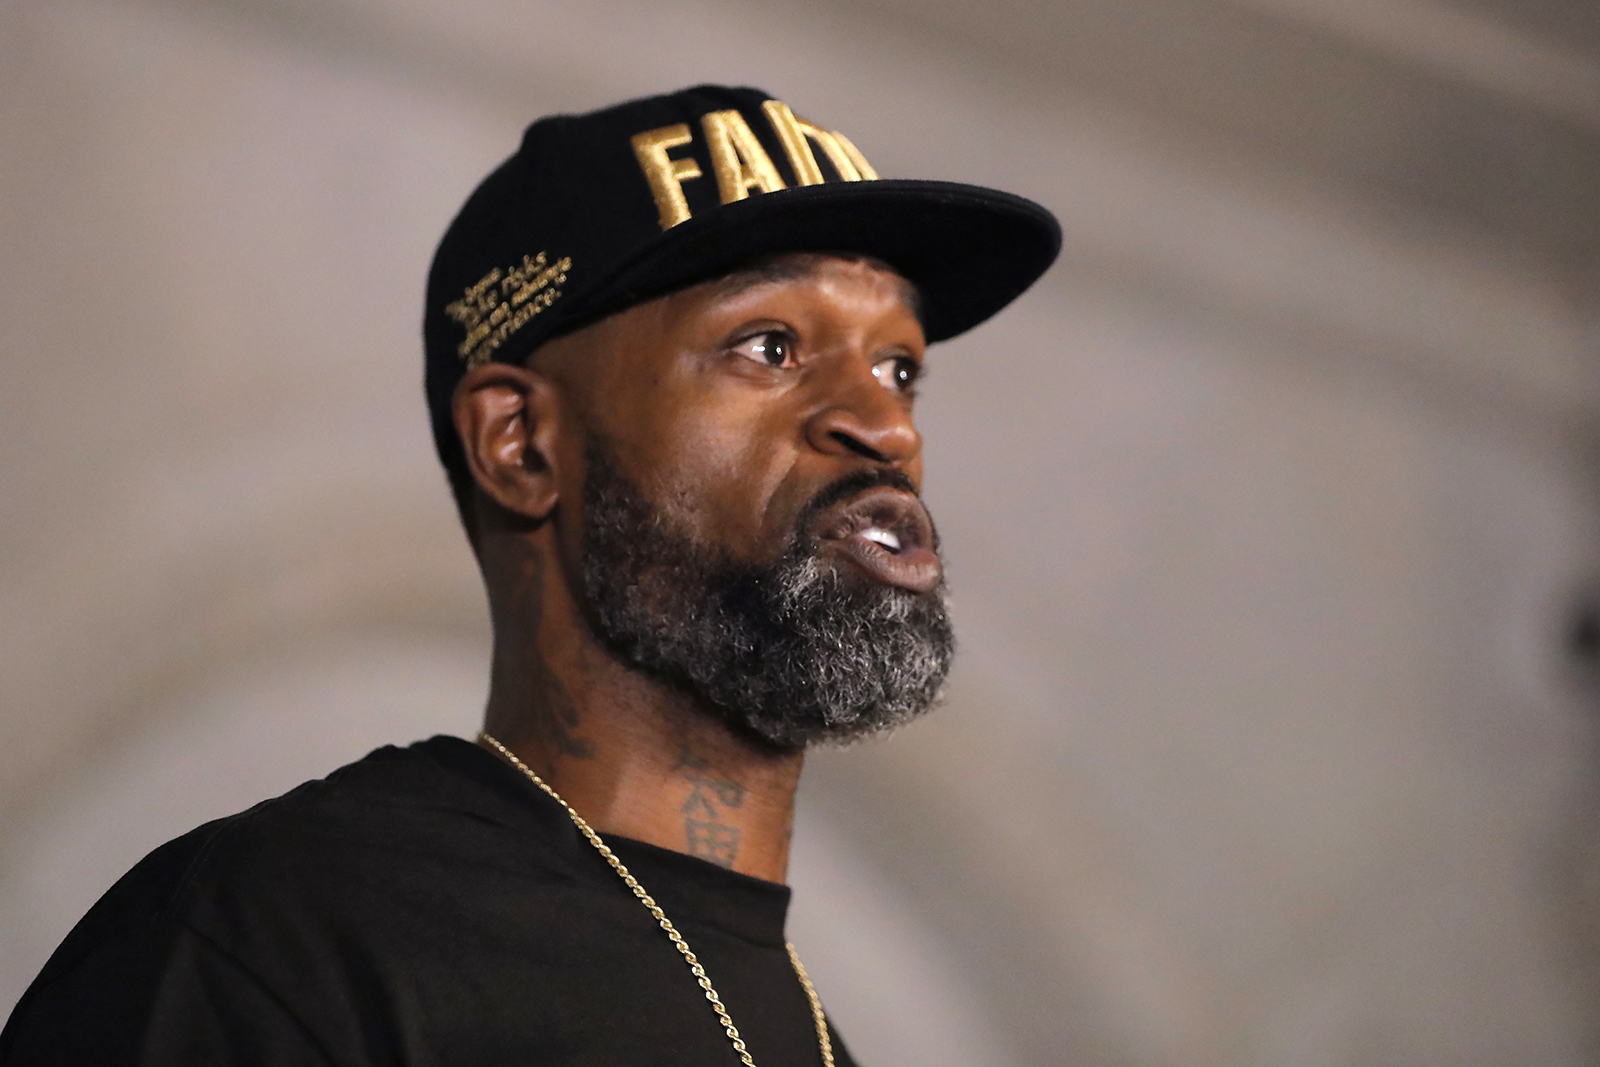 Stephen Jackson, a friend of George Floyd, speaks during a news conference, Tuesday, June 2, 2020, in Minneapolis, Minn. The nation saw protests against police brutality sparked by the death of George Floyd, a black man who died after being restrained by Minneapolis police officers on May 25. (AP Photo/Julio Cortez)